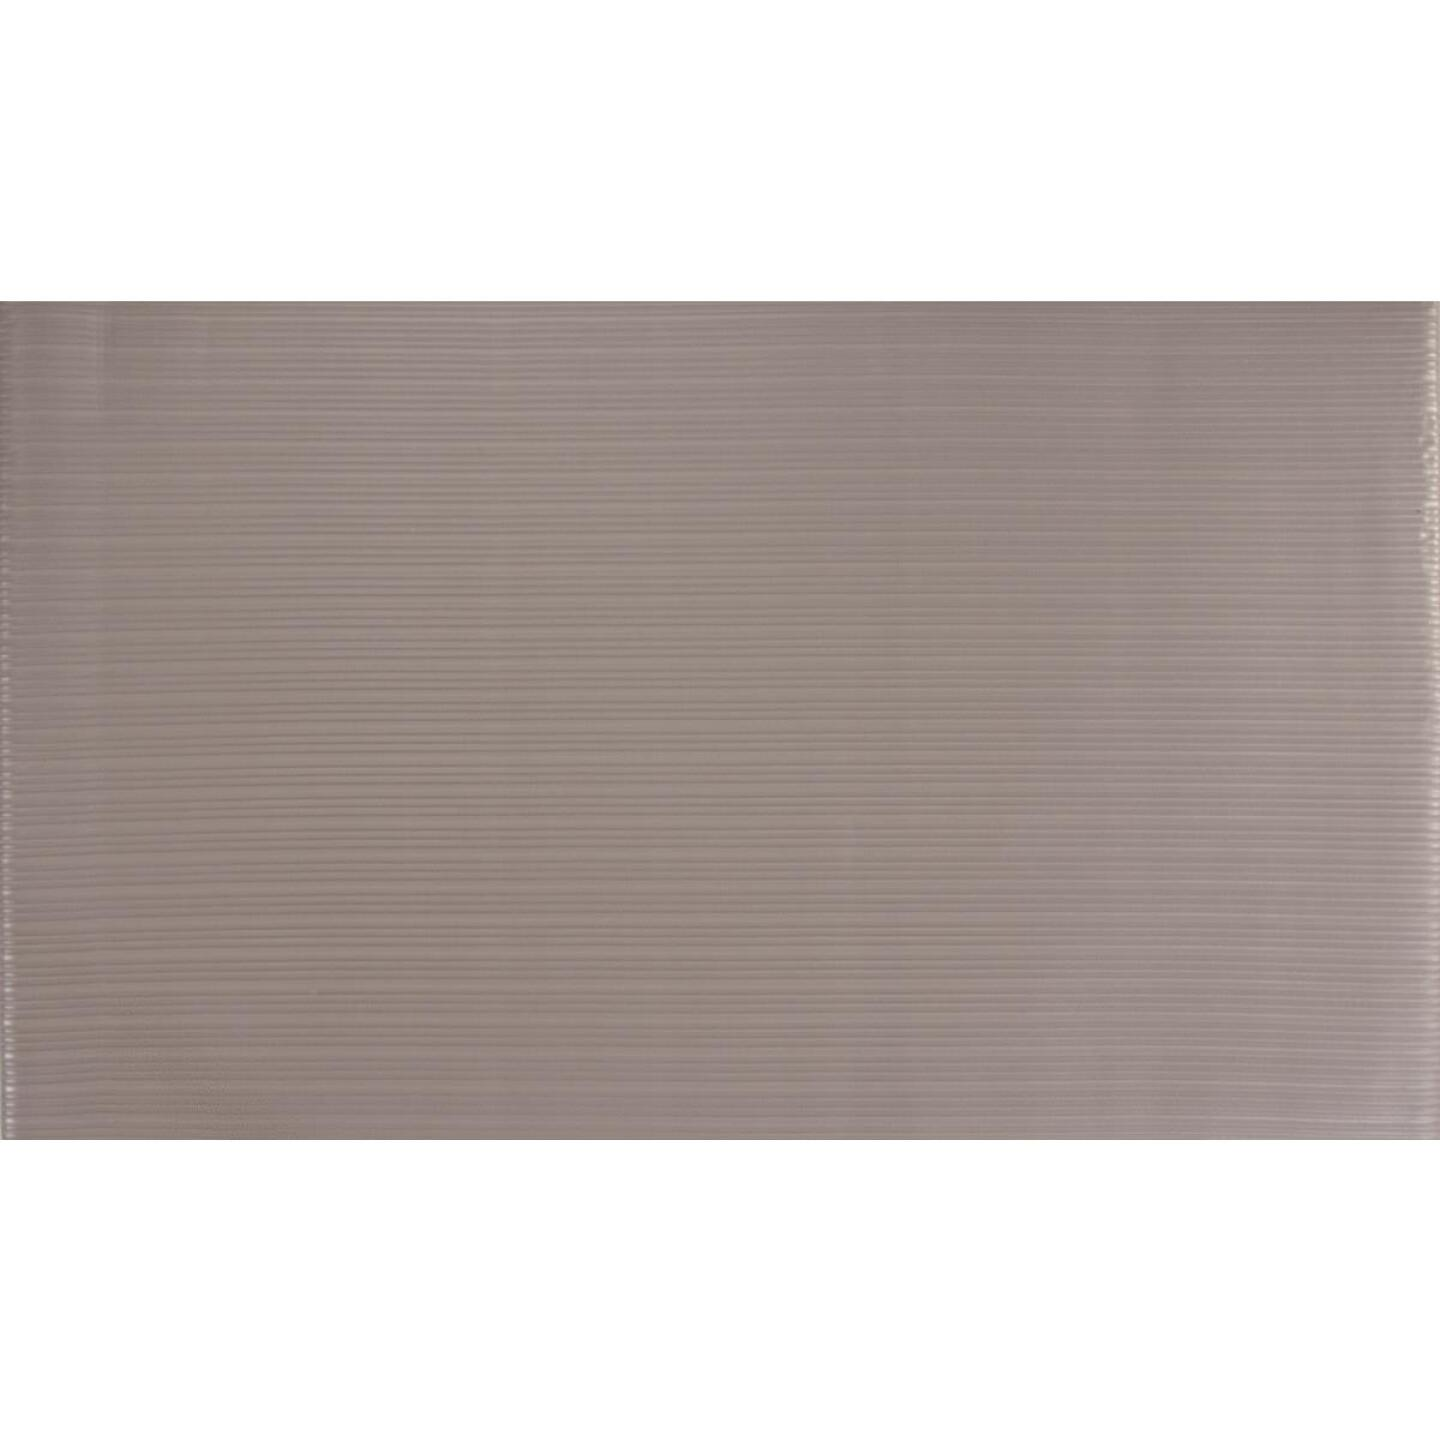 Apache 36 In. x 60 In. Gray Soft Foot Anti-Fatigue Mat Image 1